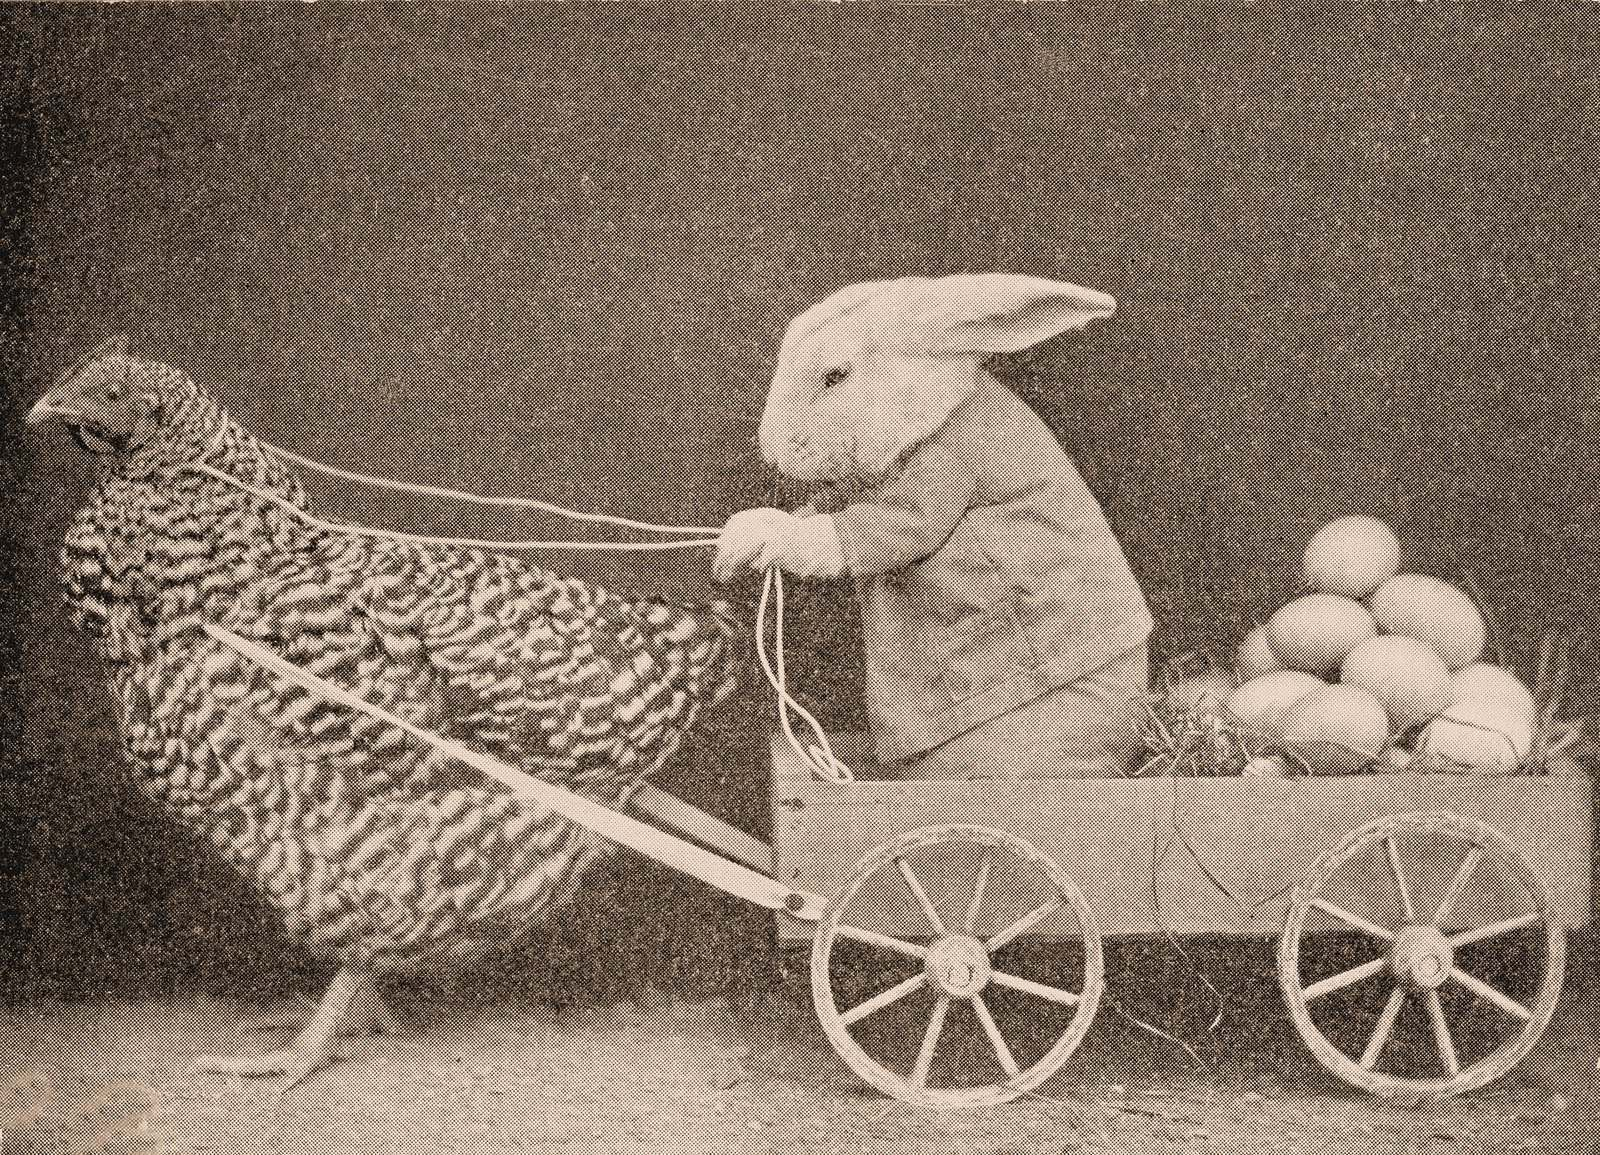 Happy Easter Images 2019 - Funny Easter Pictures, Bunny ...